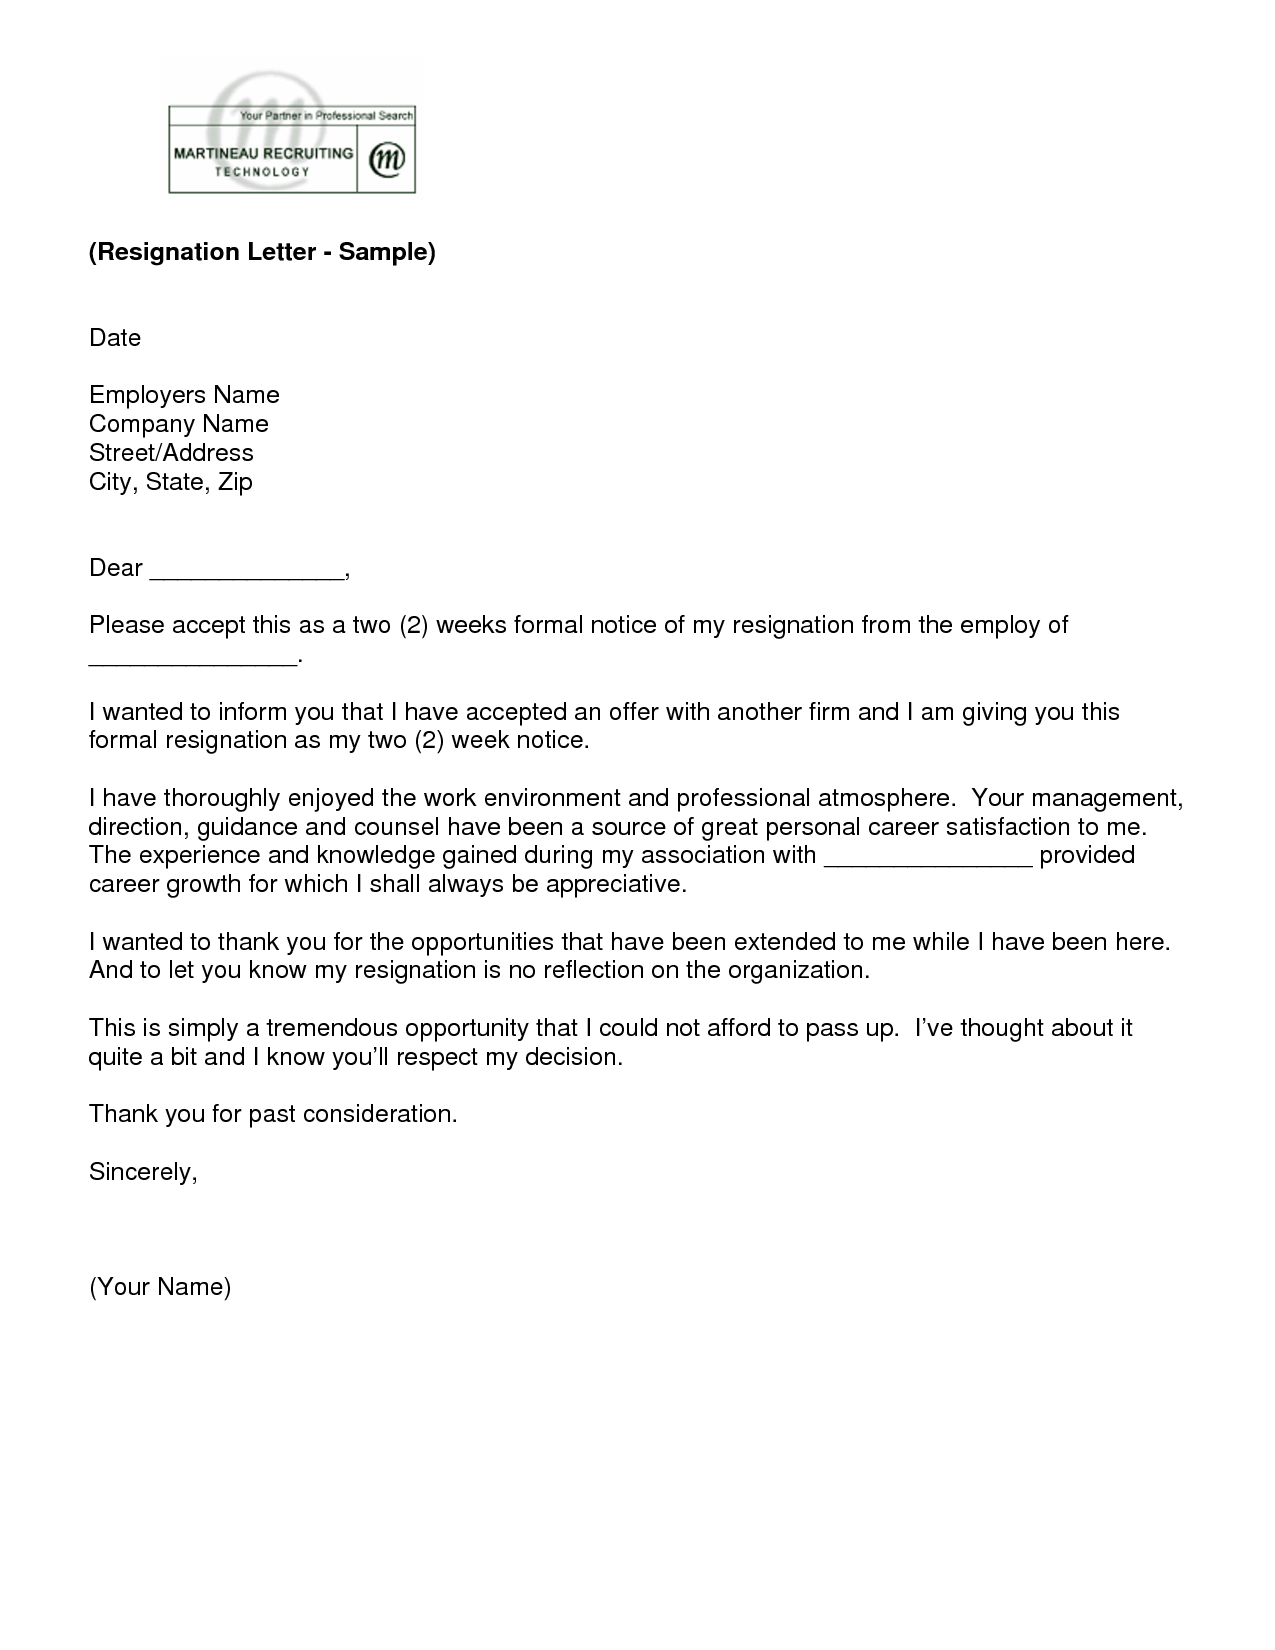 resignation notice format Resignation letter templates you can download and print for free we have tips on writing letters of resignation as well as resignation letter templates.